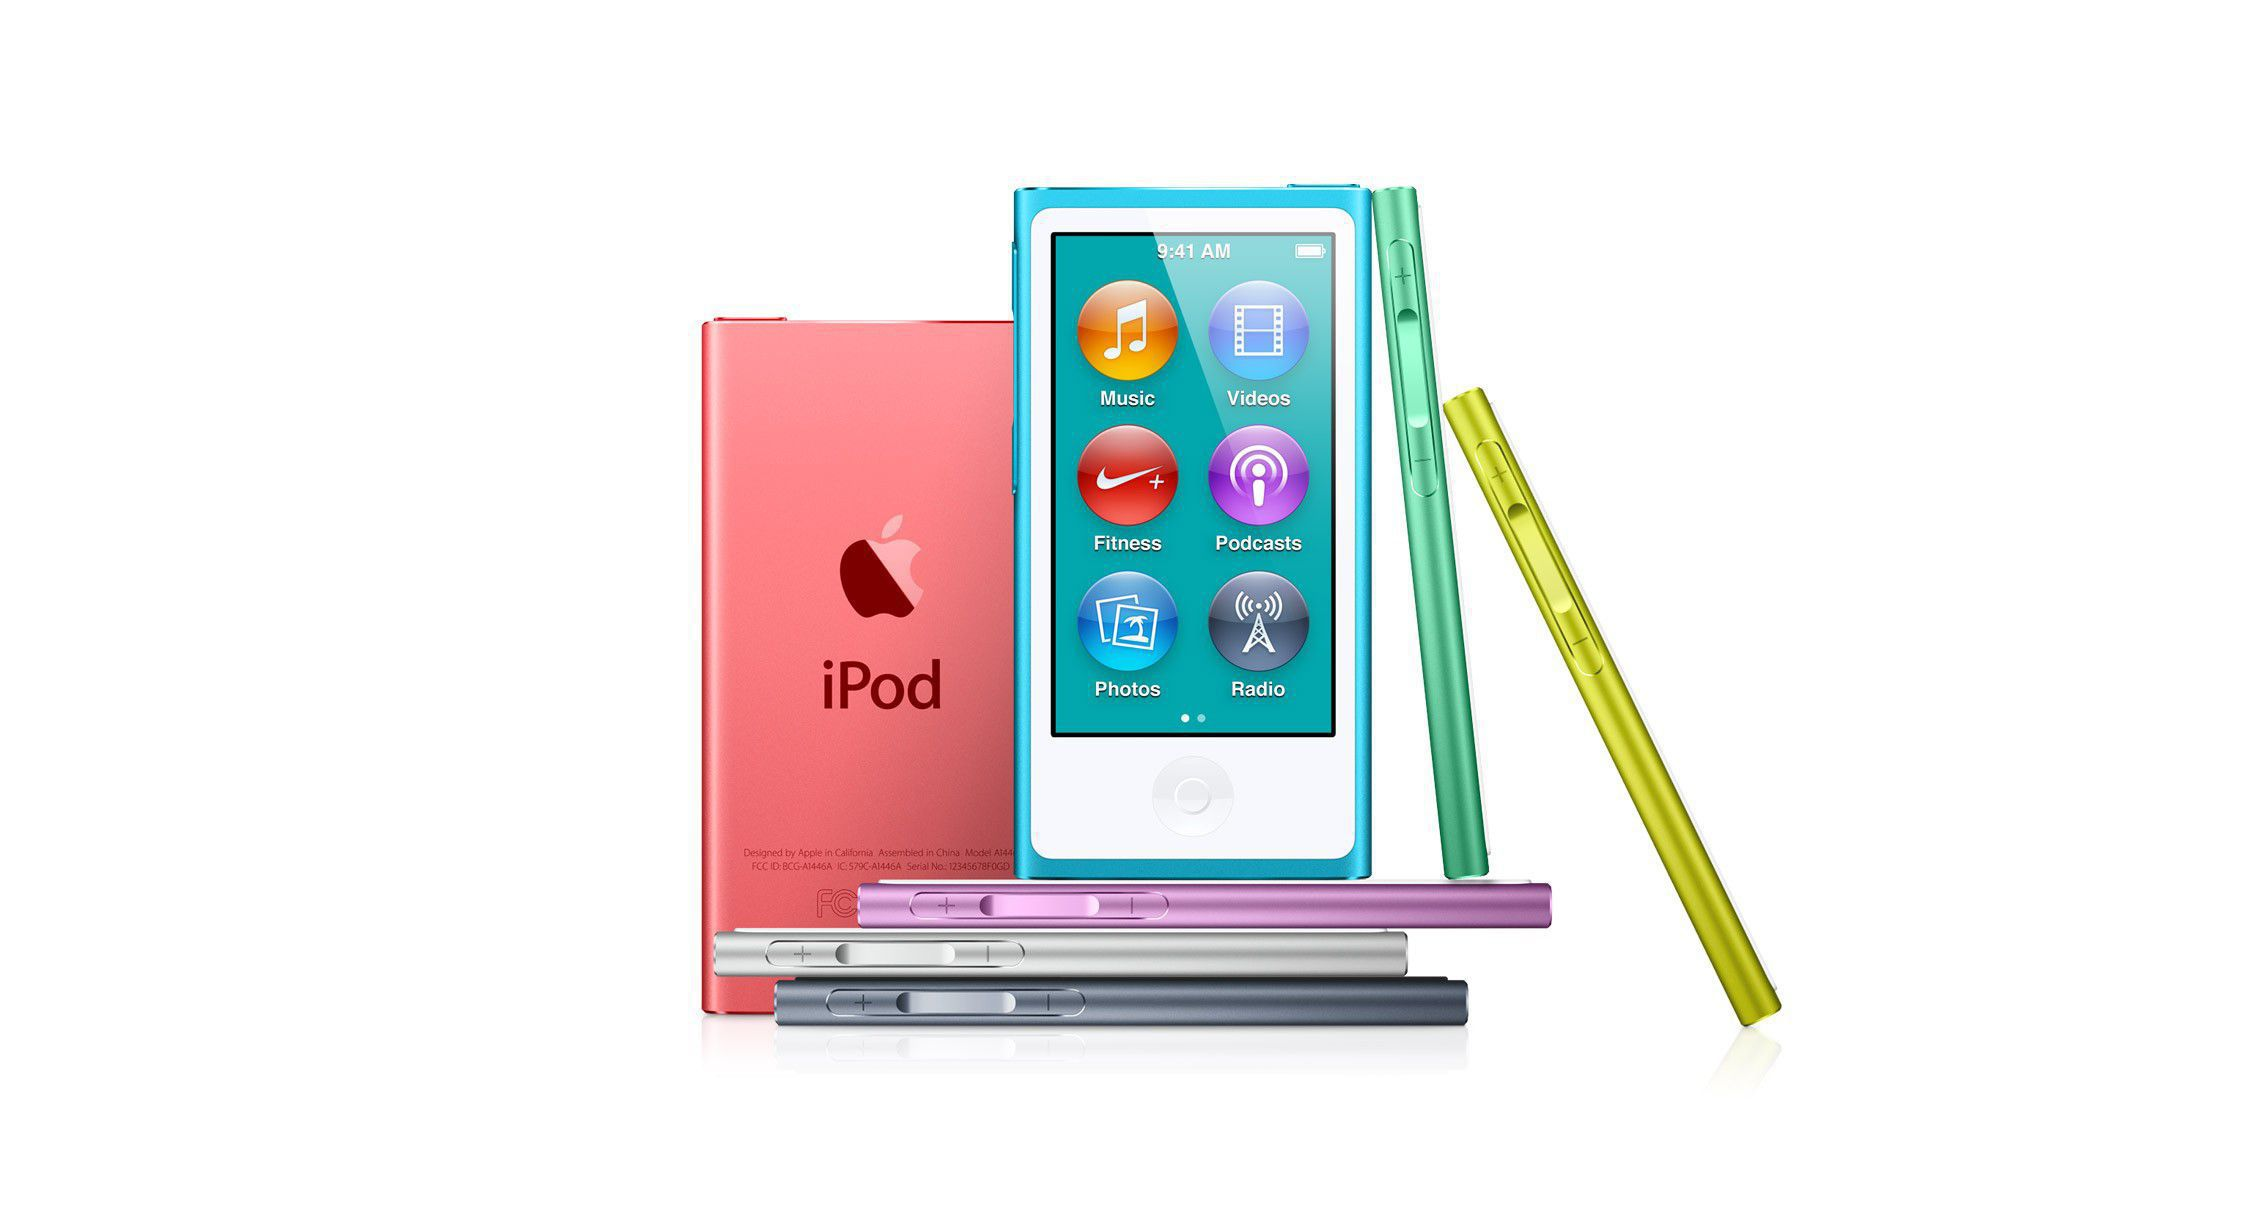 Apple Ipod Images